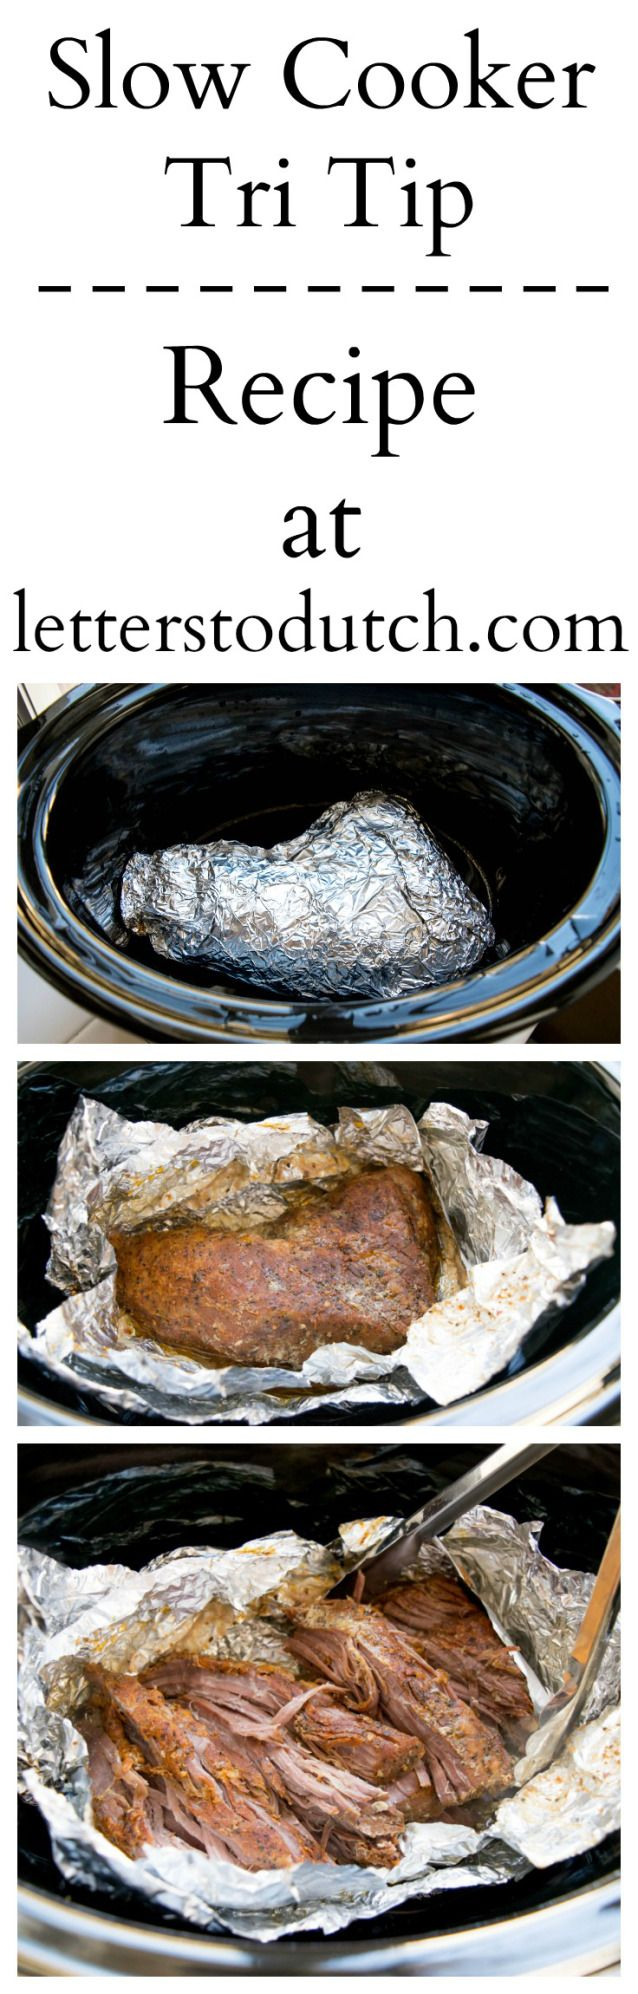 Learn How to Slow Cook Tri-Tip  #slow #cook #slowcooker #tritip #meat #tender #protein #delicious #yummy #recipe #crockpot #juicy #food #tutorial #letterstodutch